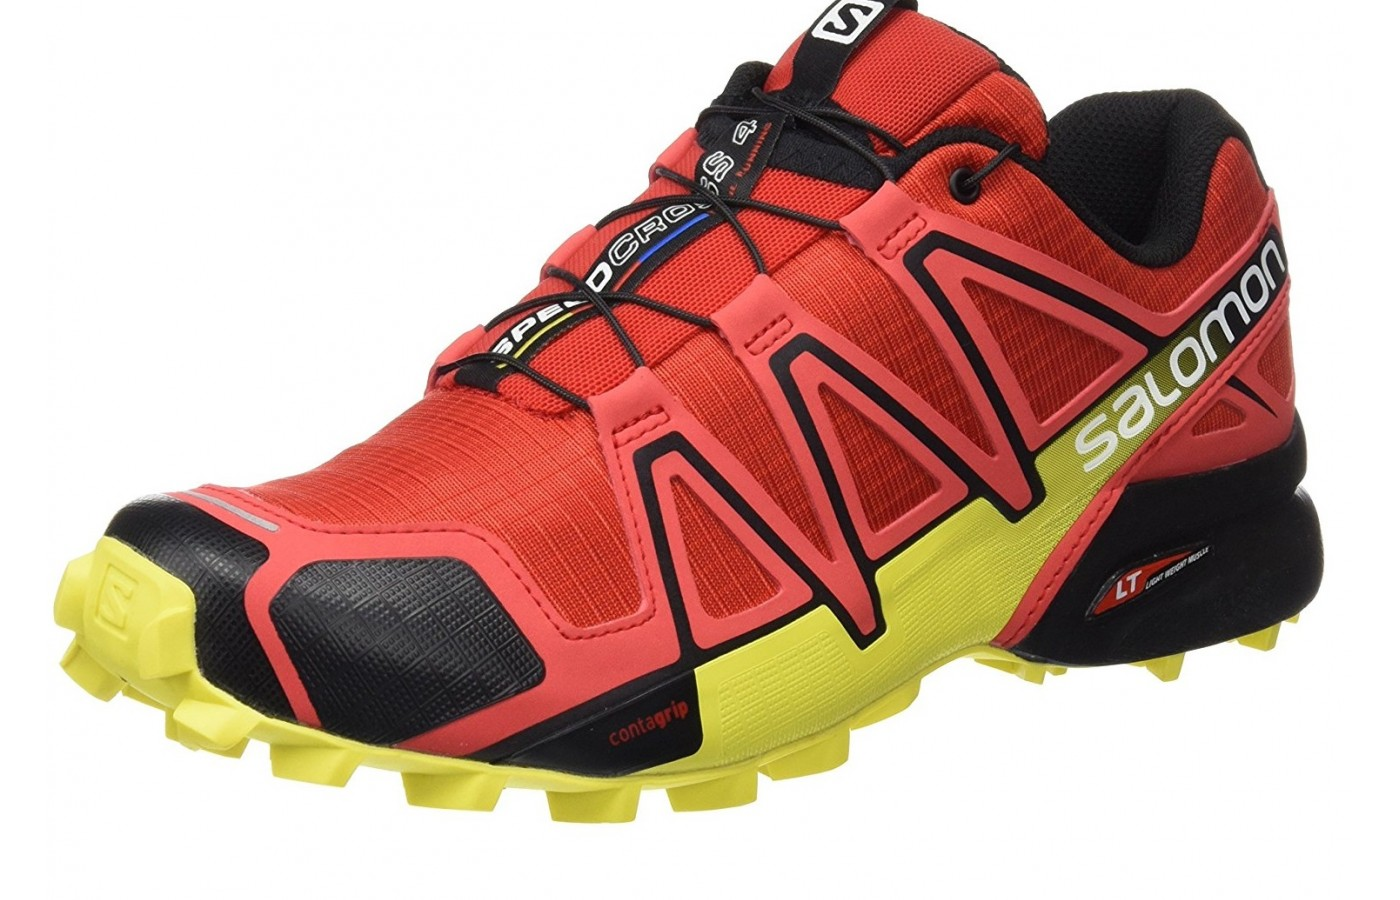 995a284127e9 ... Trail Running Shoes. Salomon Speedcross 4 Side view ...